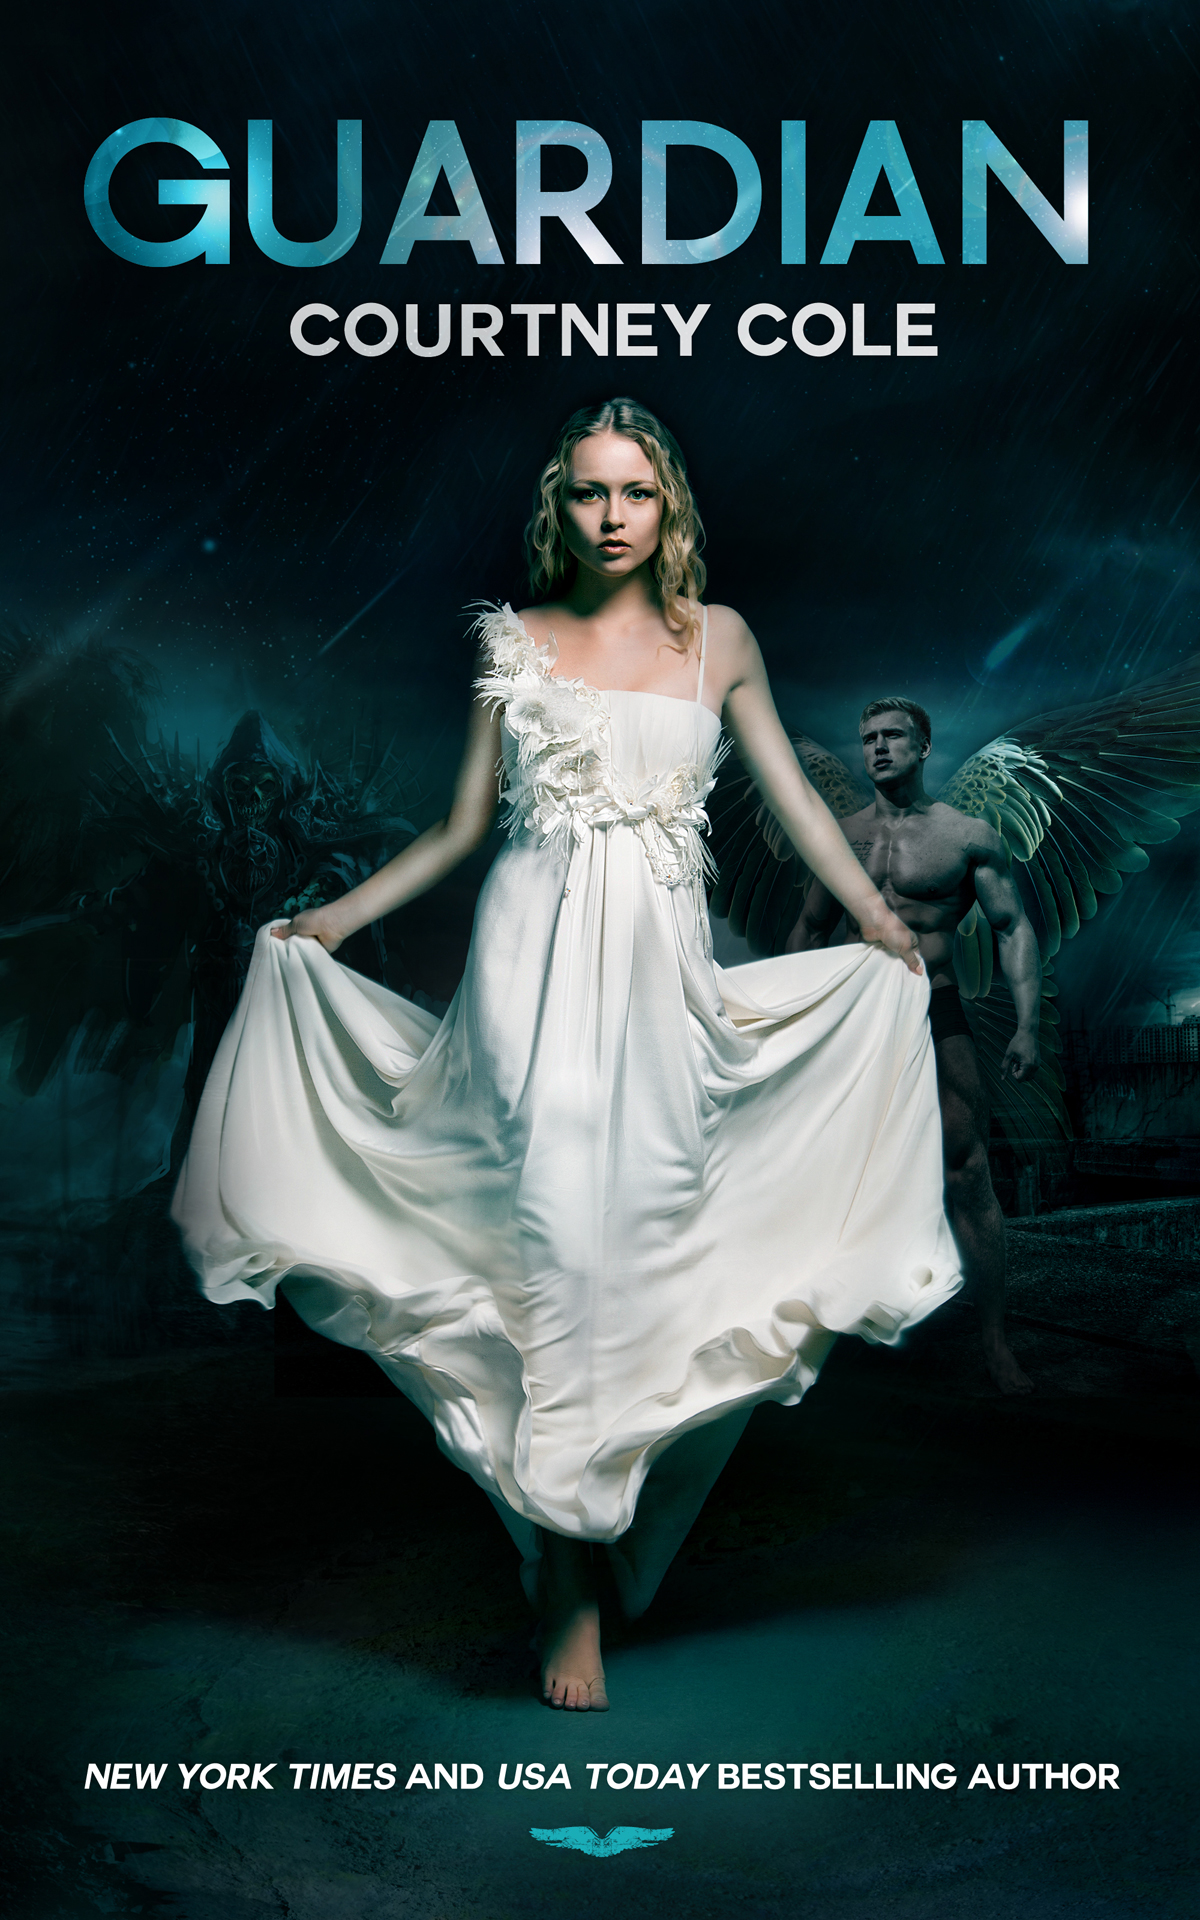 COVER REVEAL: GUARDIAN by Courtney Cole